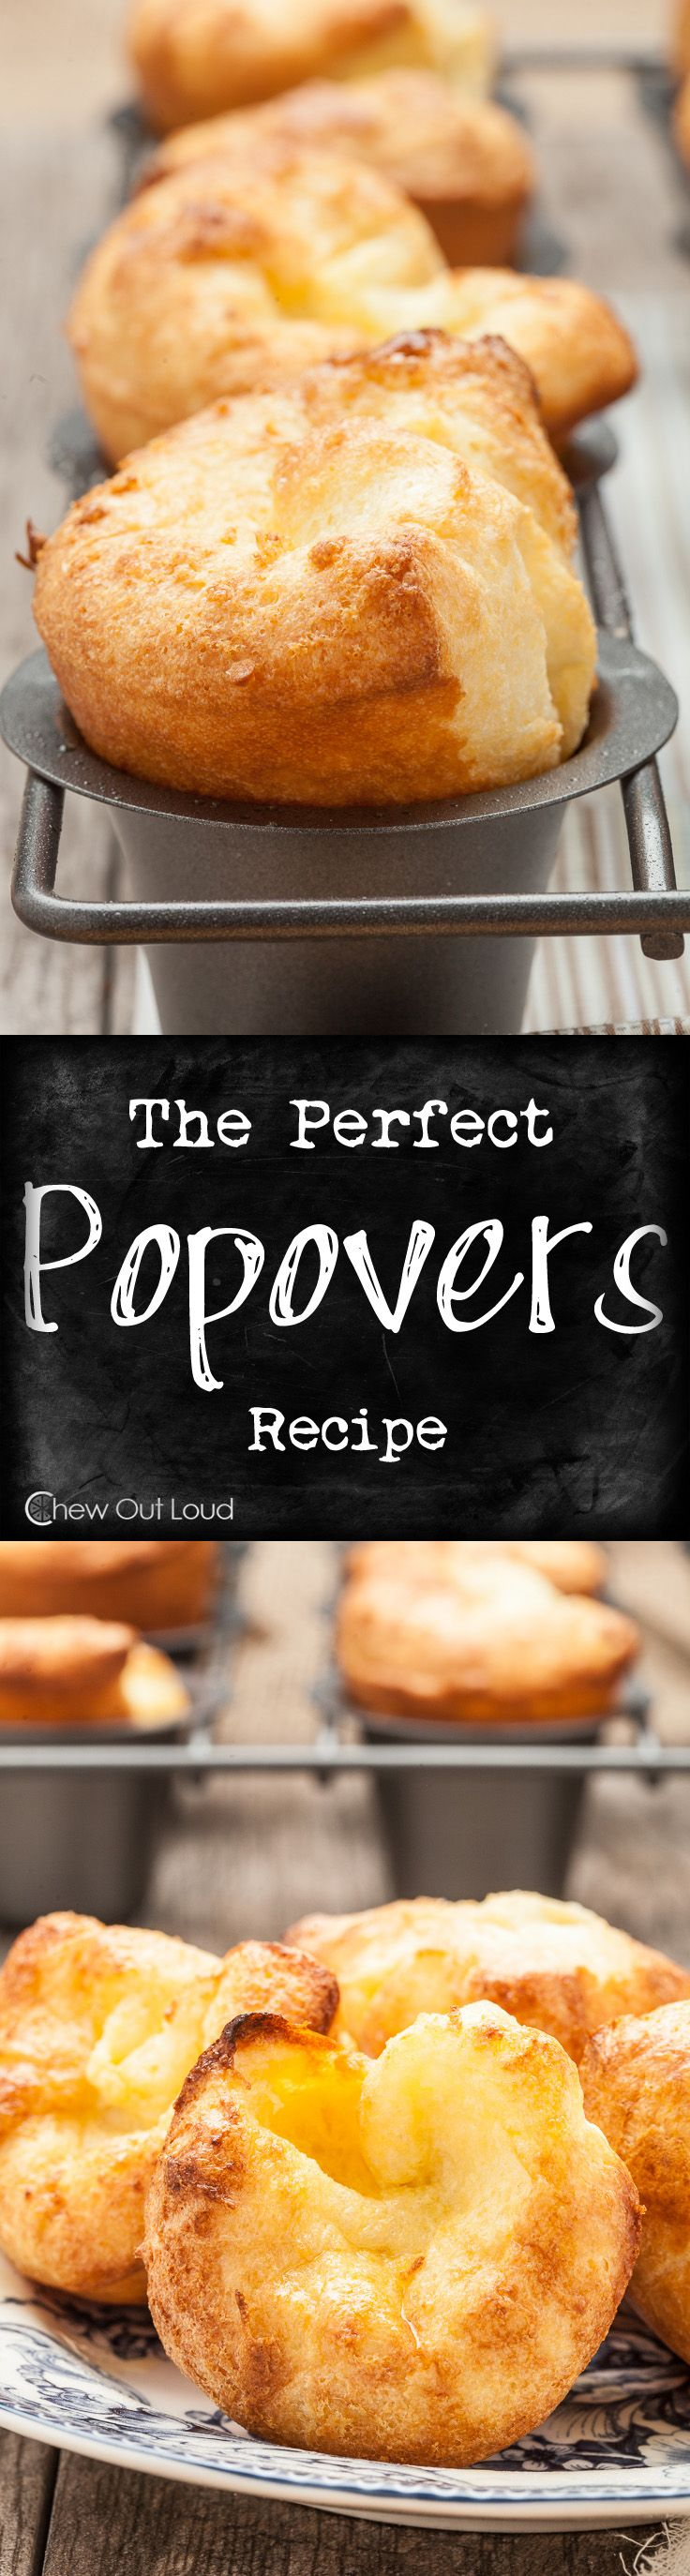 Perfect Popovers Chew Out Loud Recipe Popover Recipe Recipes Food